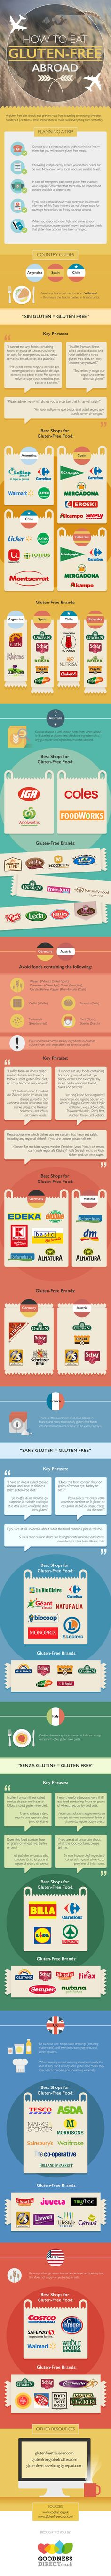 How to Eat Gluten-Free Abroad? #infographic #HowTo #Travel